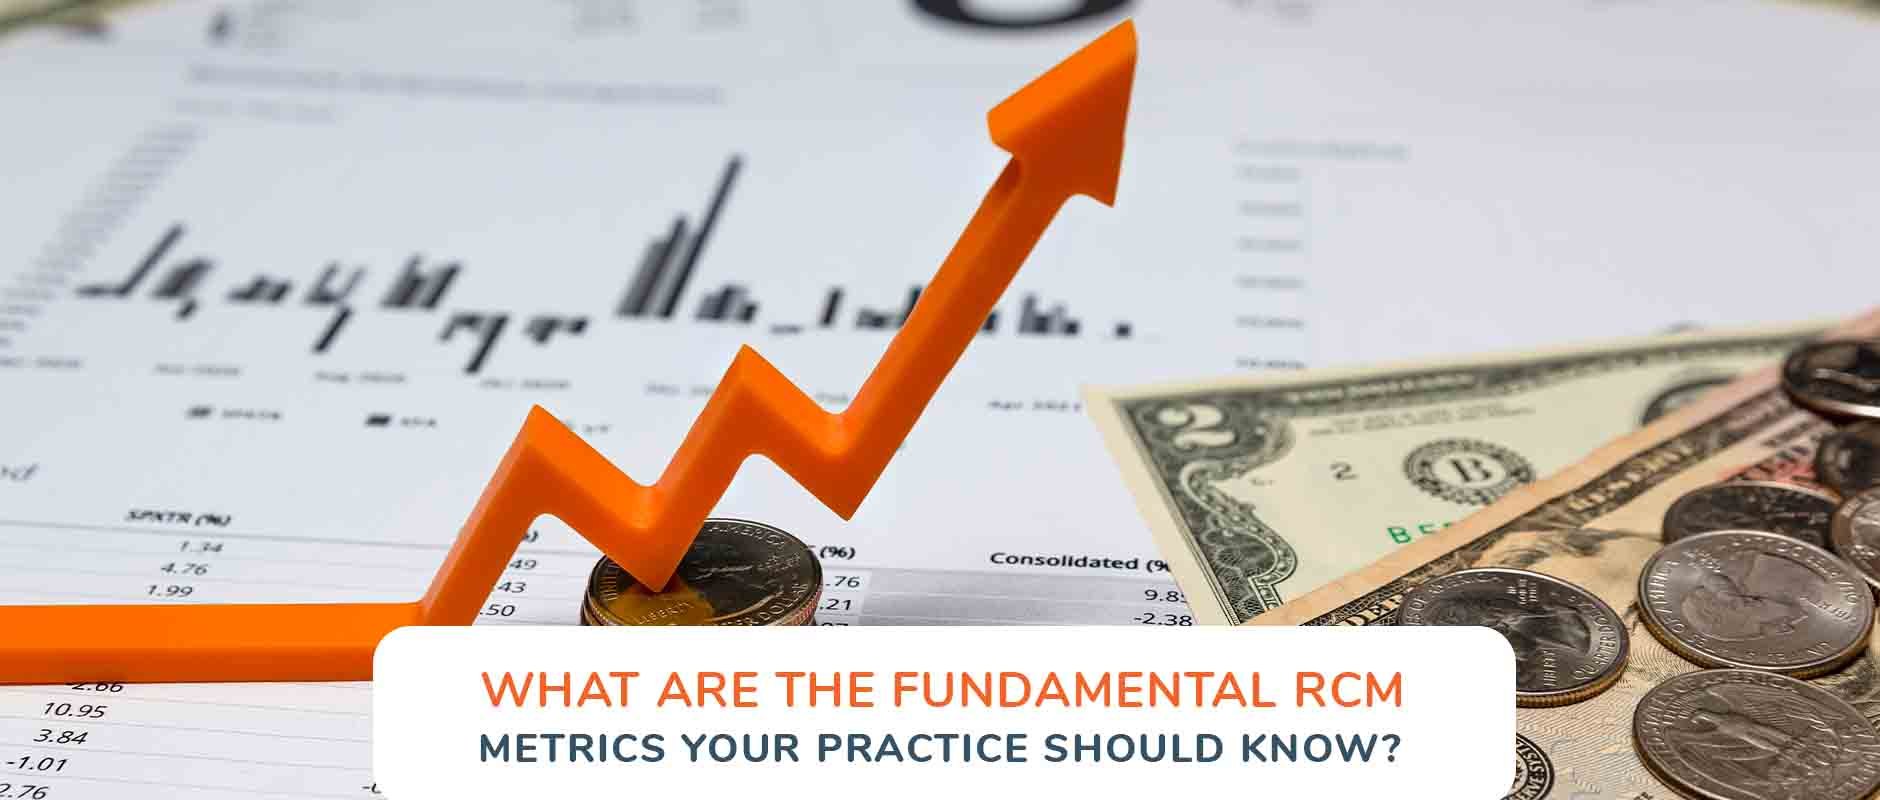 What Are The Fundamental RCM Metrics Your Practice Should Know Banner